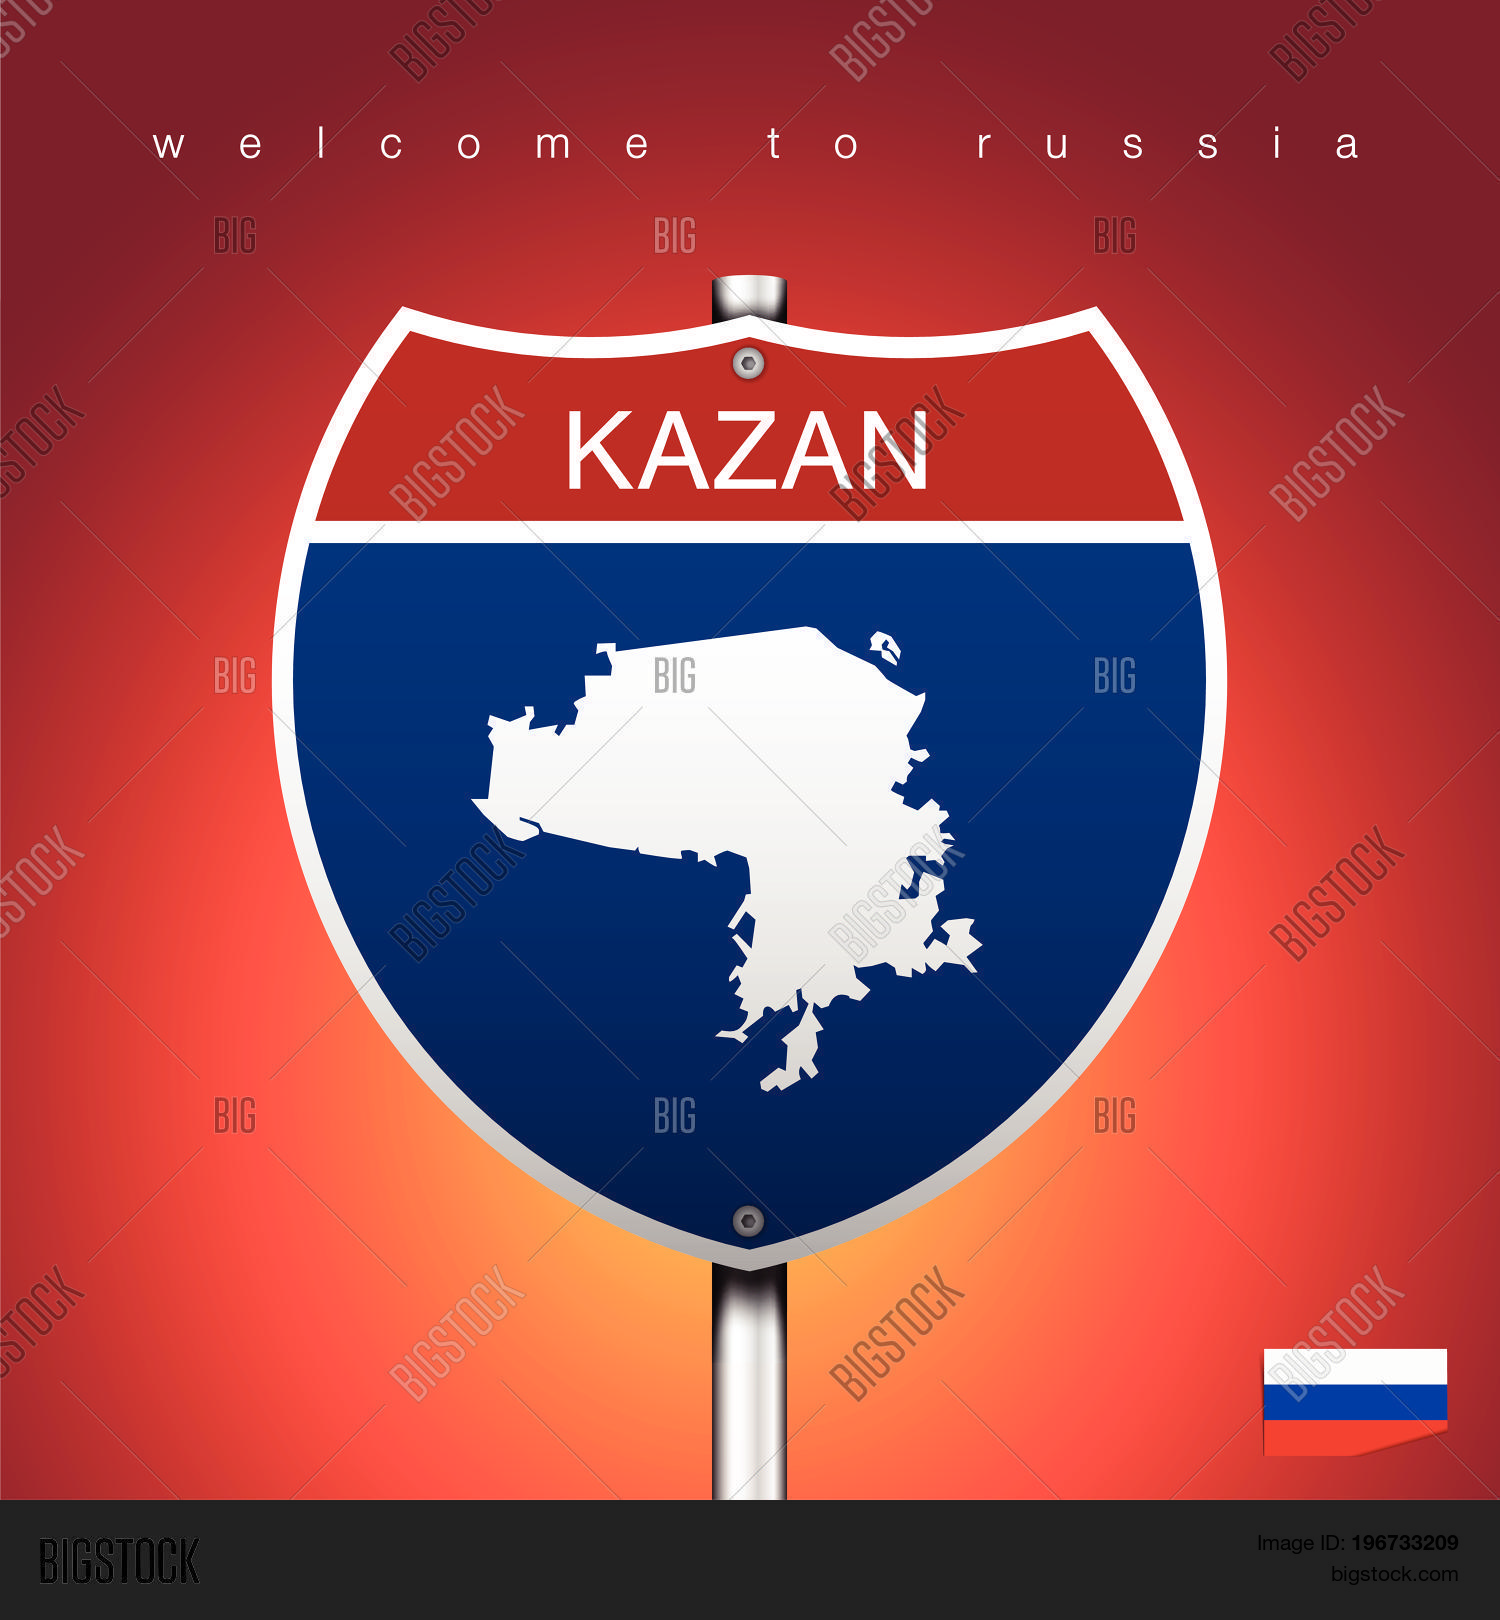 Sign Road America Vector & Photo (Free Trial) | Bigstock Kazan Russia America Maps on markovo russia map, bashkiria russia map, yaroslavl russia map, vladivostok map, grozny russia map, ufa russia map, novgorod russia map, yurga russia map, moscow map, elista russia map, warsaw russia map, crimea russia map, tatarstan russia map, irkutsk map, tula russia map, samara russia map, serpukhov russia map, astrakhan russia map, tynda russia map, volsk russia map,